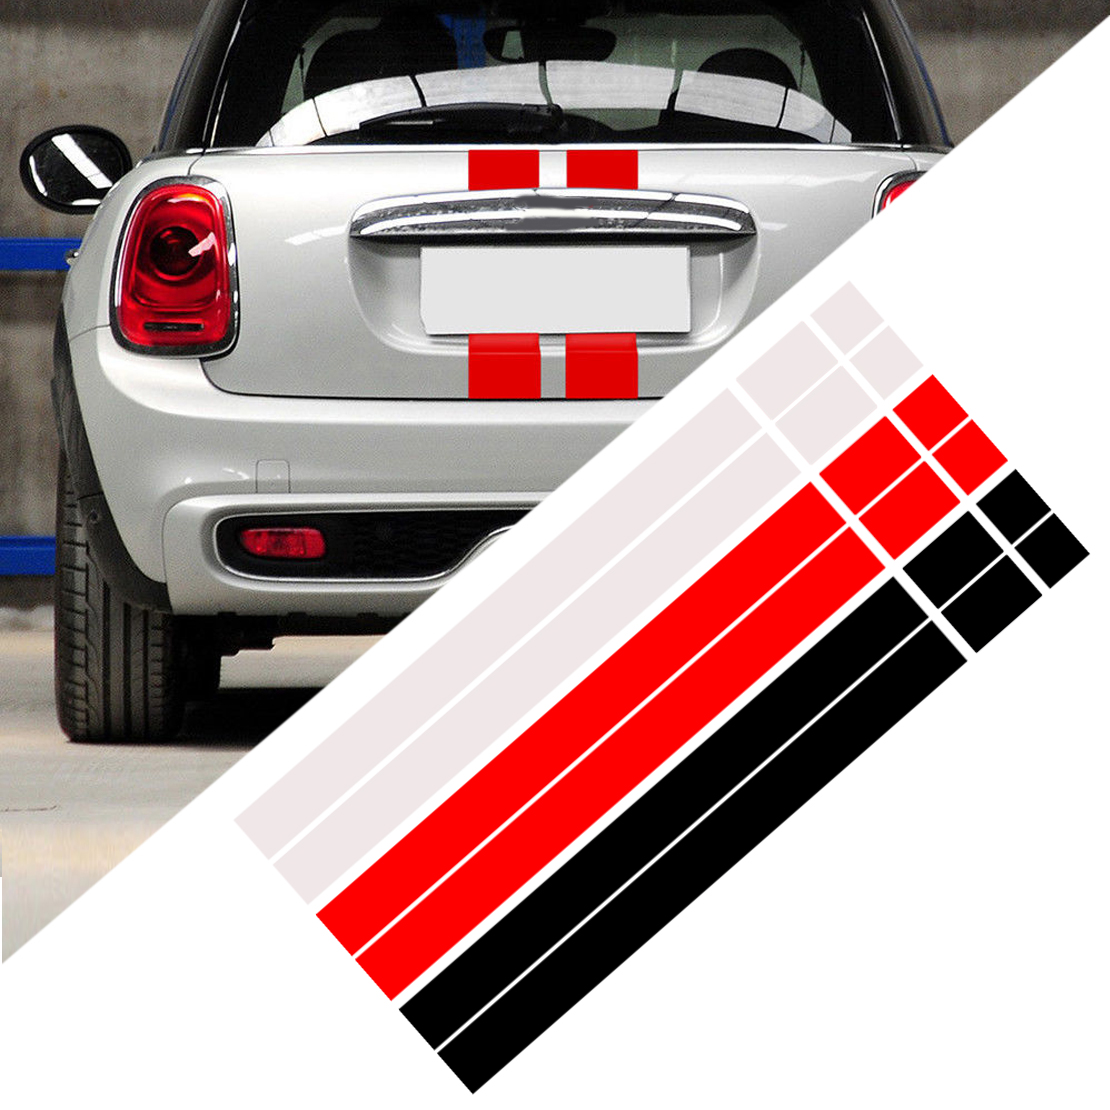 CITALL 2Pcs Car Bonnet Stripes Hood Sticker Cover Vinyl Decal Fit For MINI Cooper R50 R53 R56 R55 DWm2754536 Black/White/Red